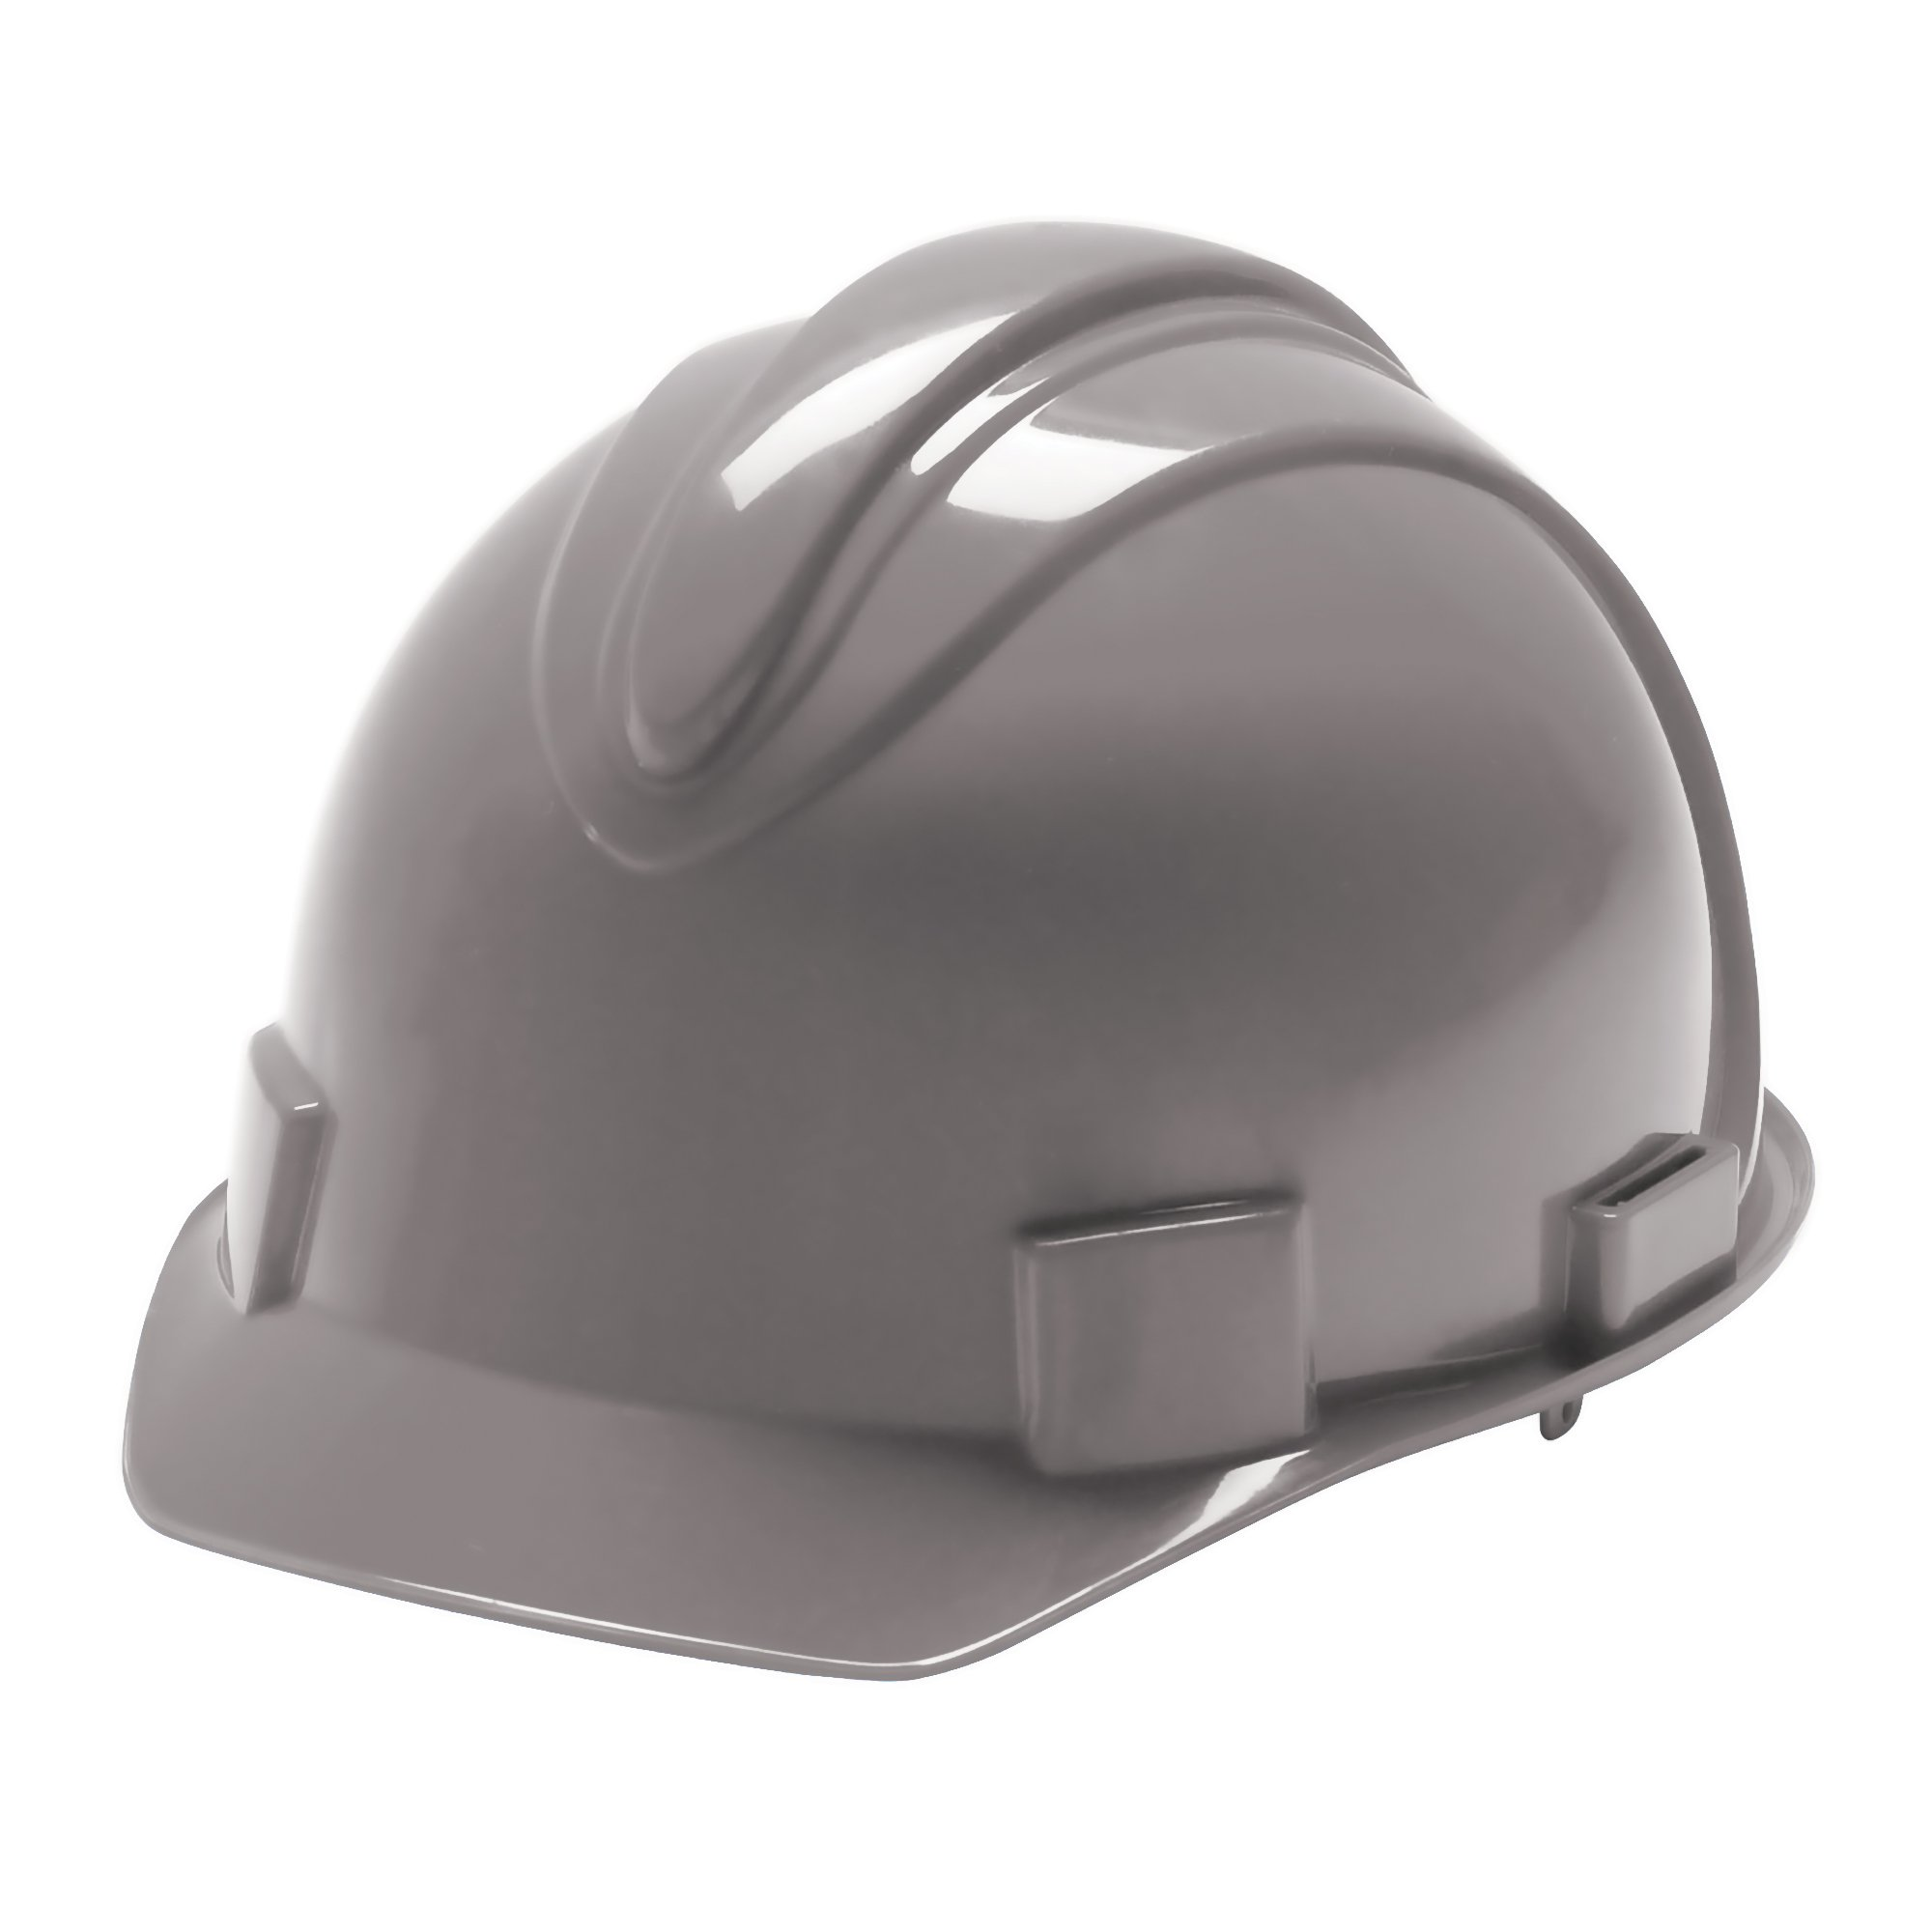 Jackson Safety Charger Hard Hat (20397), Meets ANSI Z89.1 - 2009, Choice of Suspension, Gray, 12 / Case